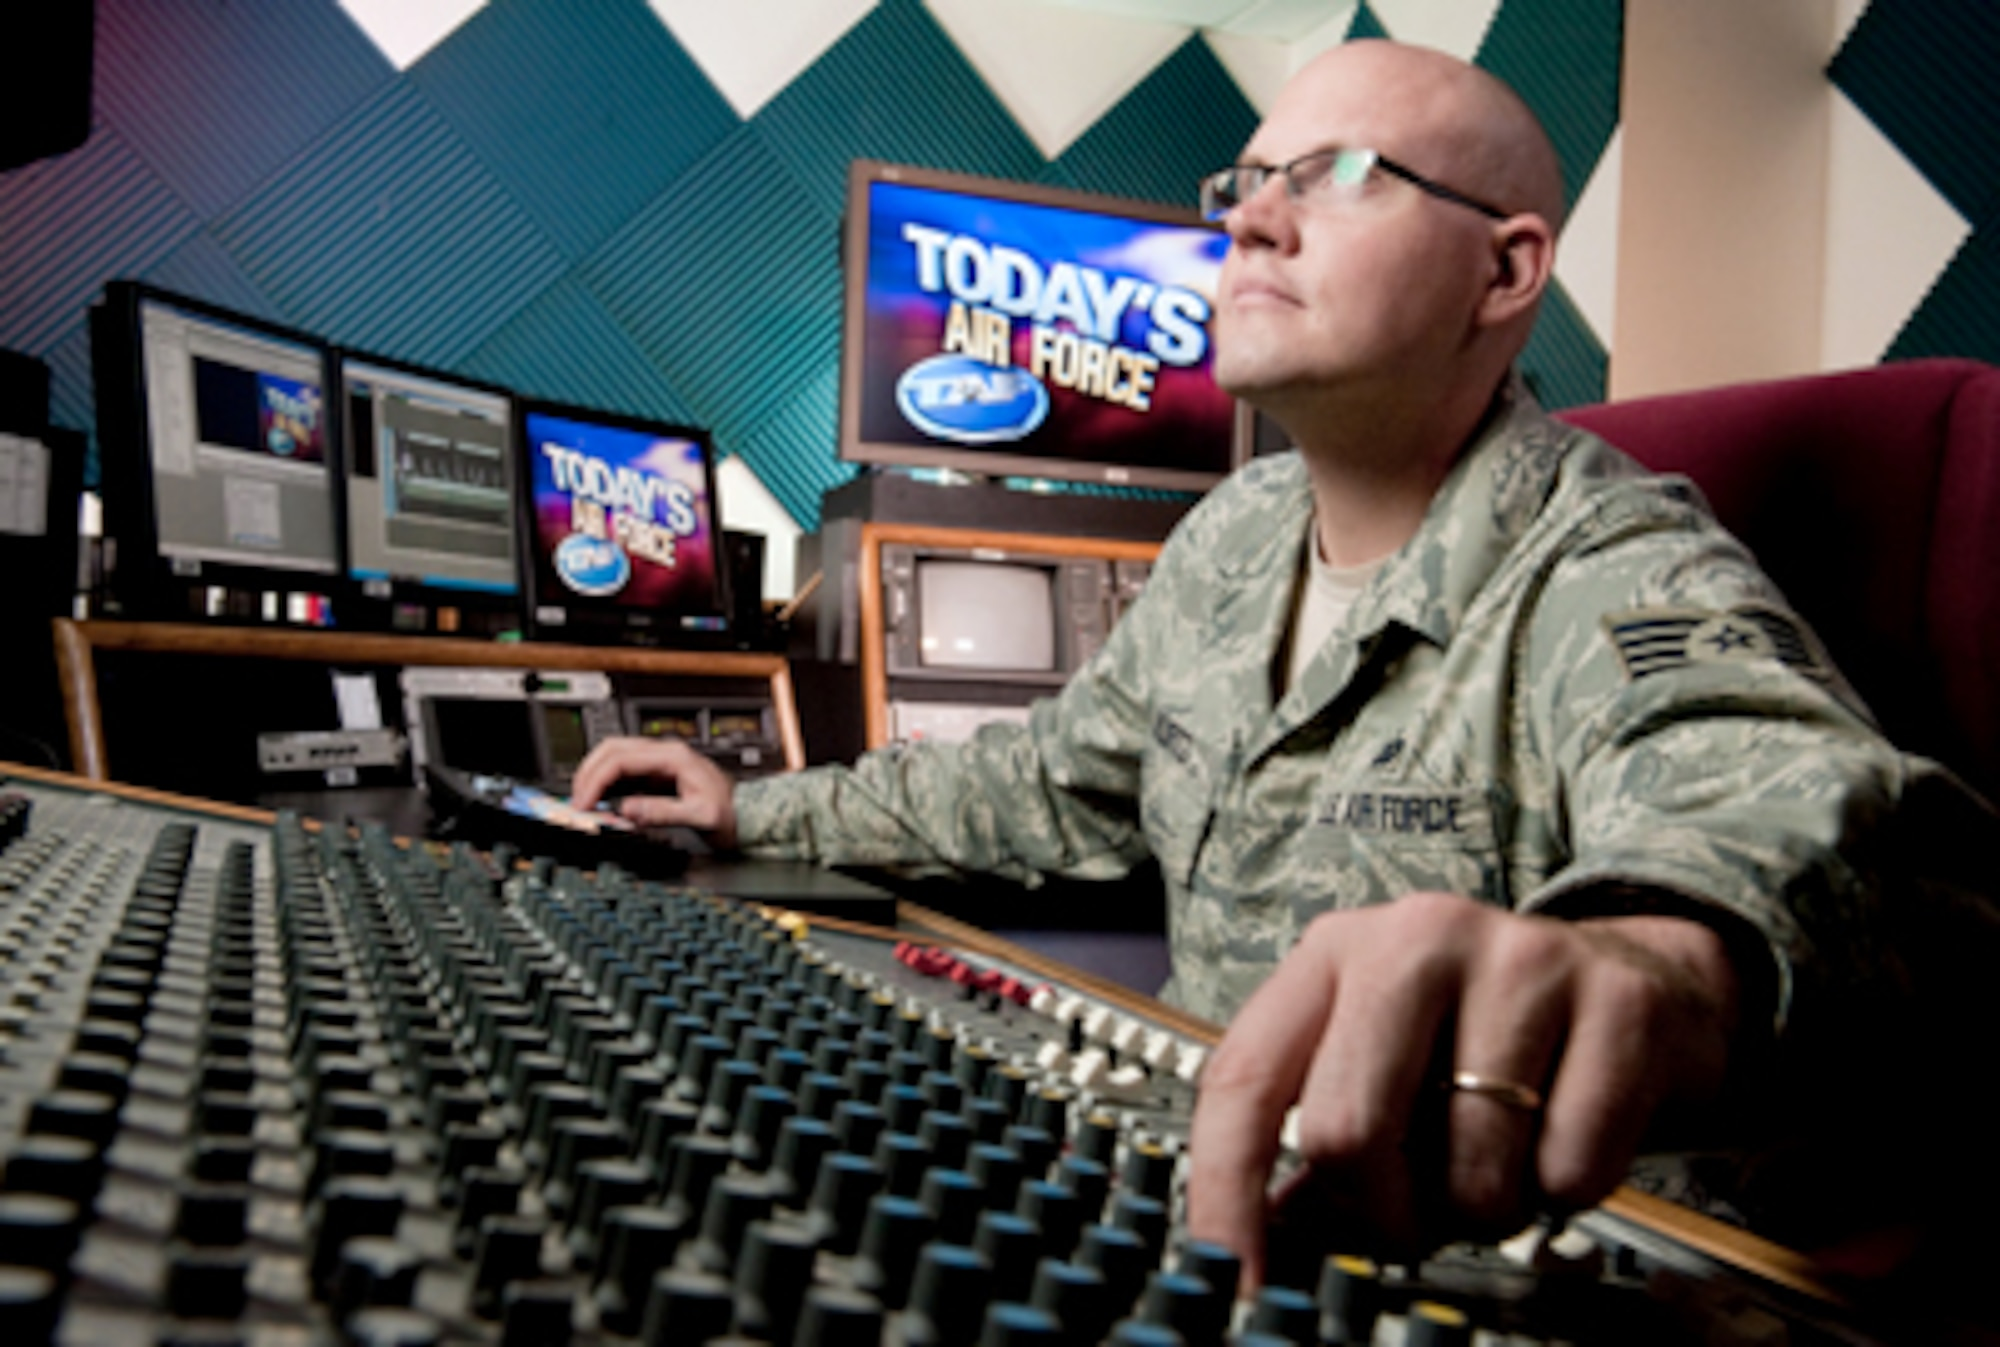 """""""Today's Air Force"""" is a long-format, weekly news show featuring in-depth stories about the Air Force's people, programs, technology, exercises, operations and more. (U.S. Air Force photo/Lance Cheung)"""